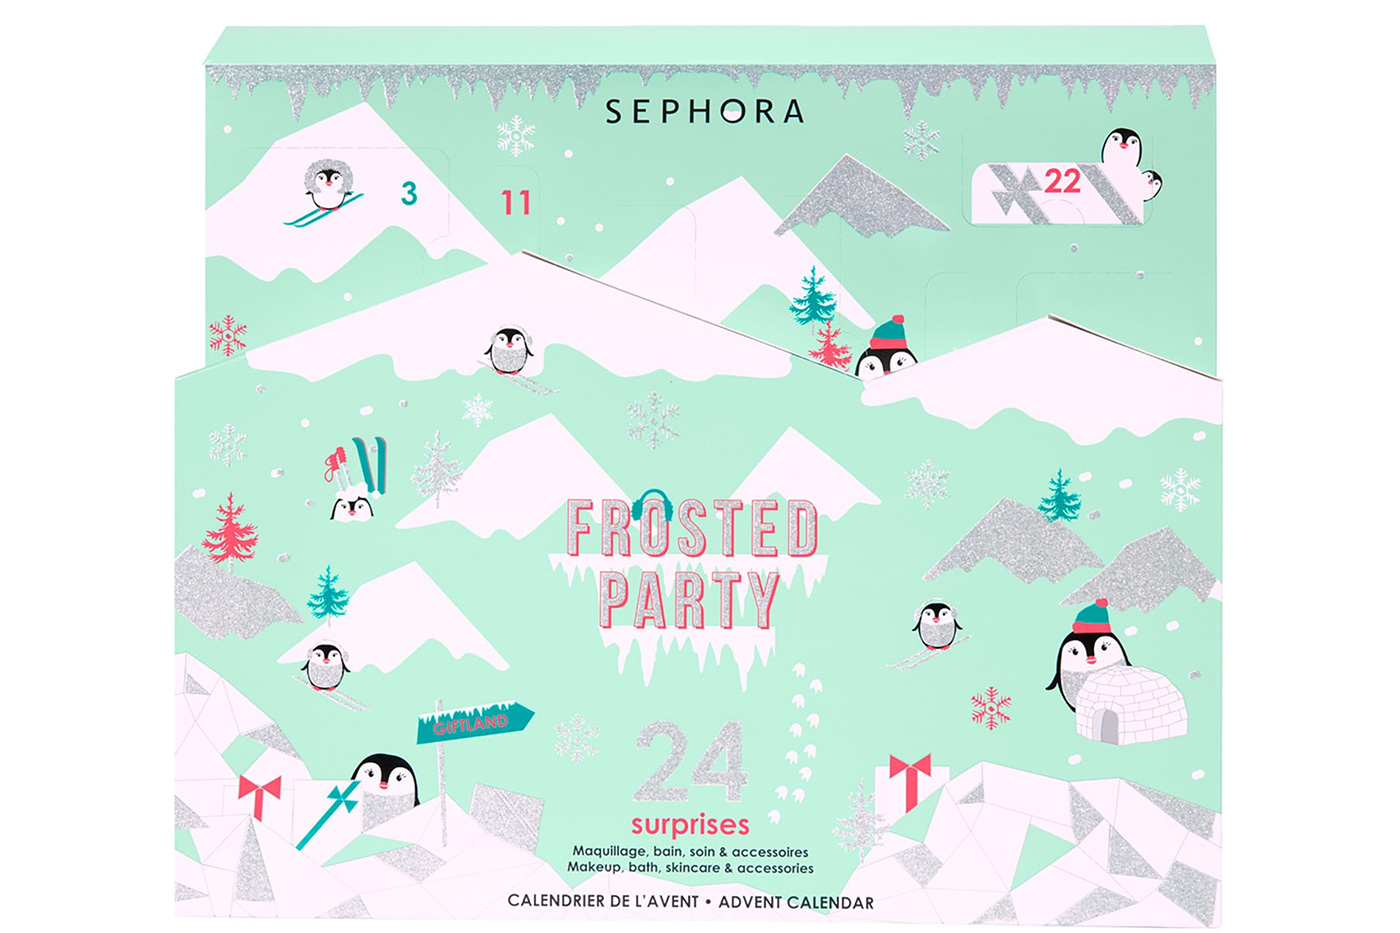 calendrier de l'avent sephora 2019 frosted party